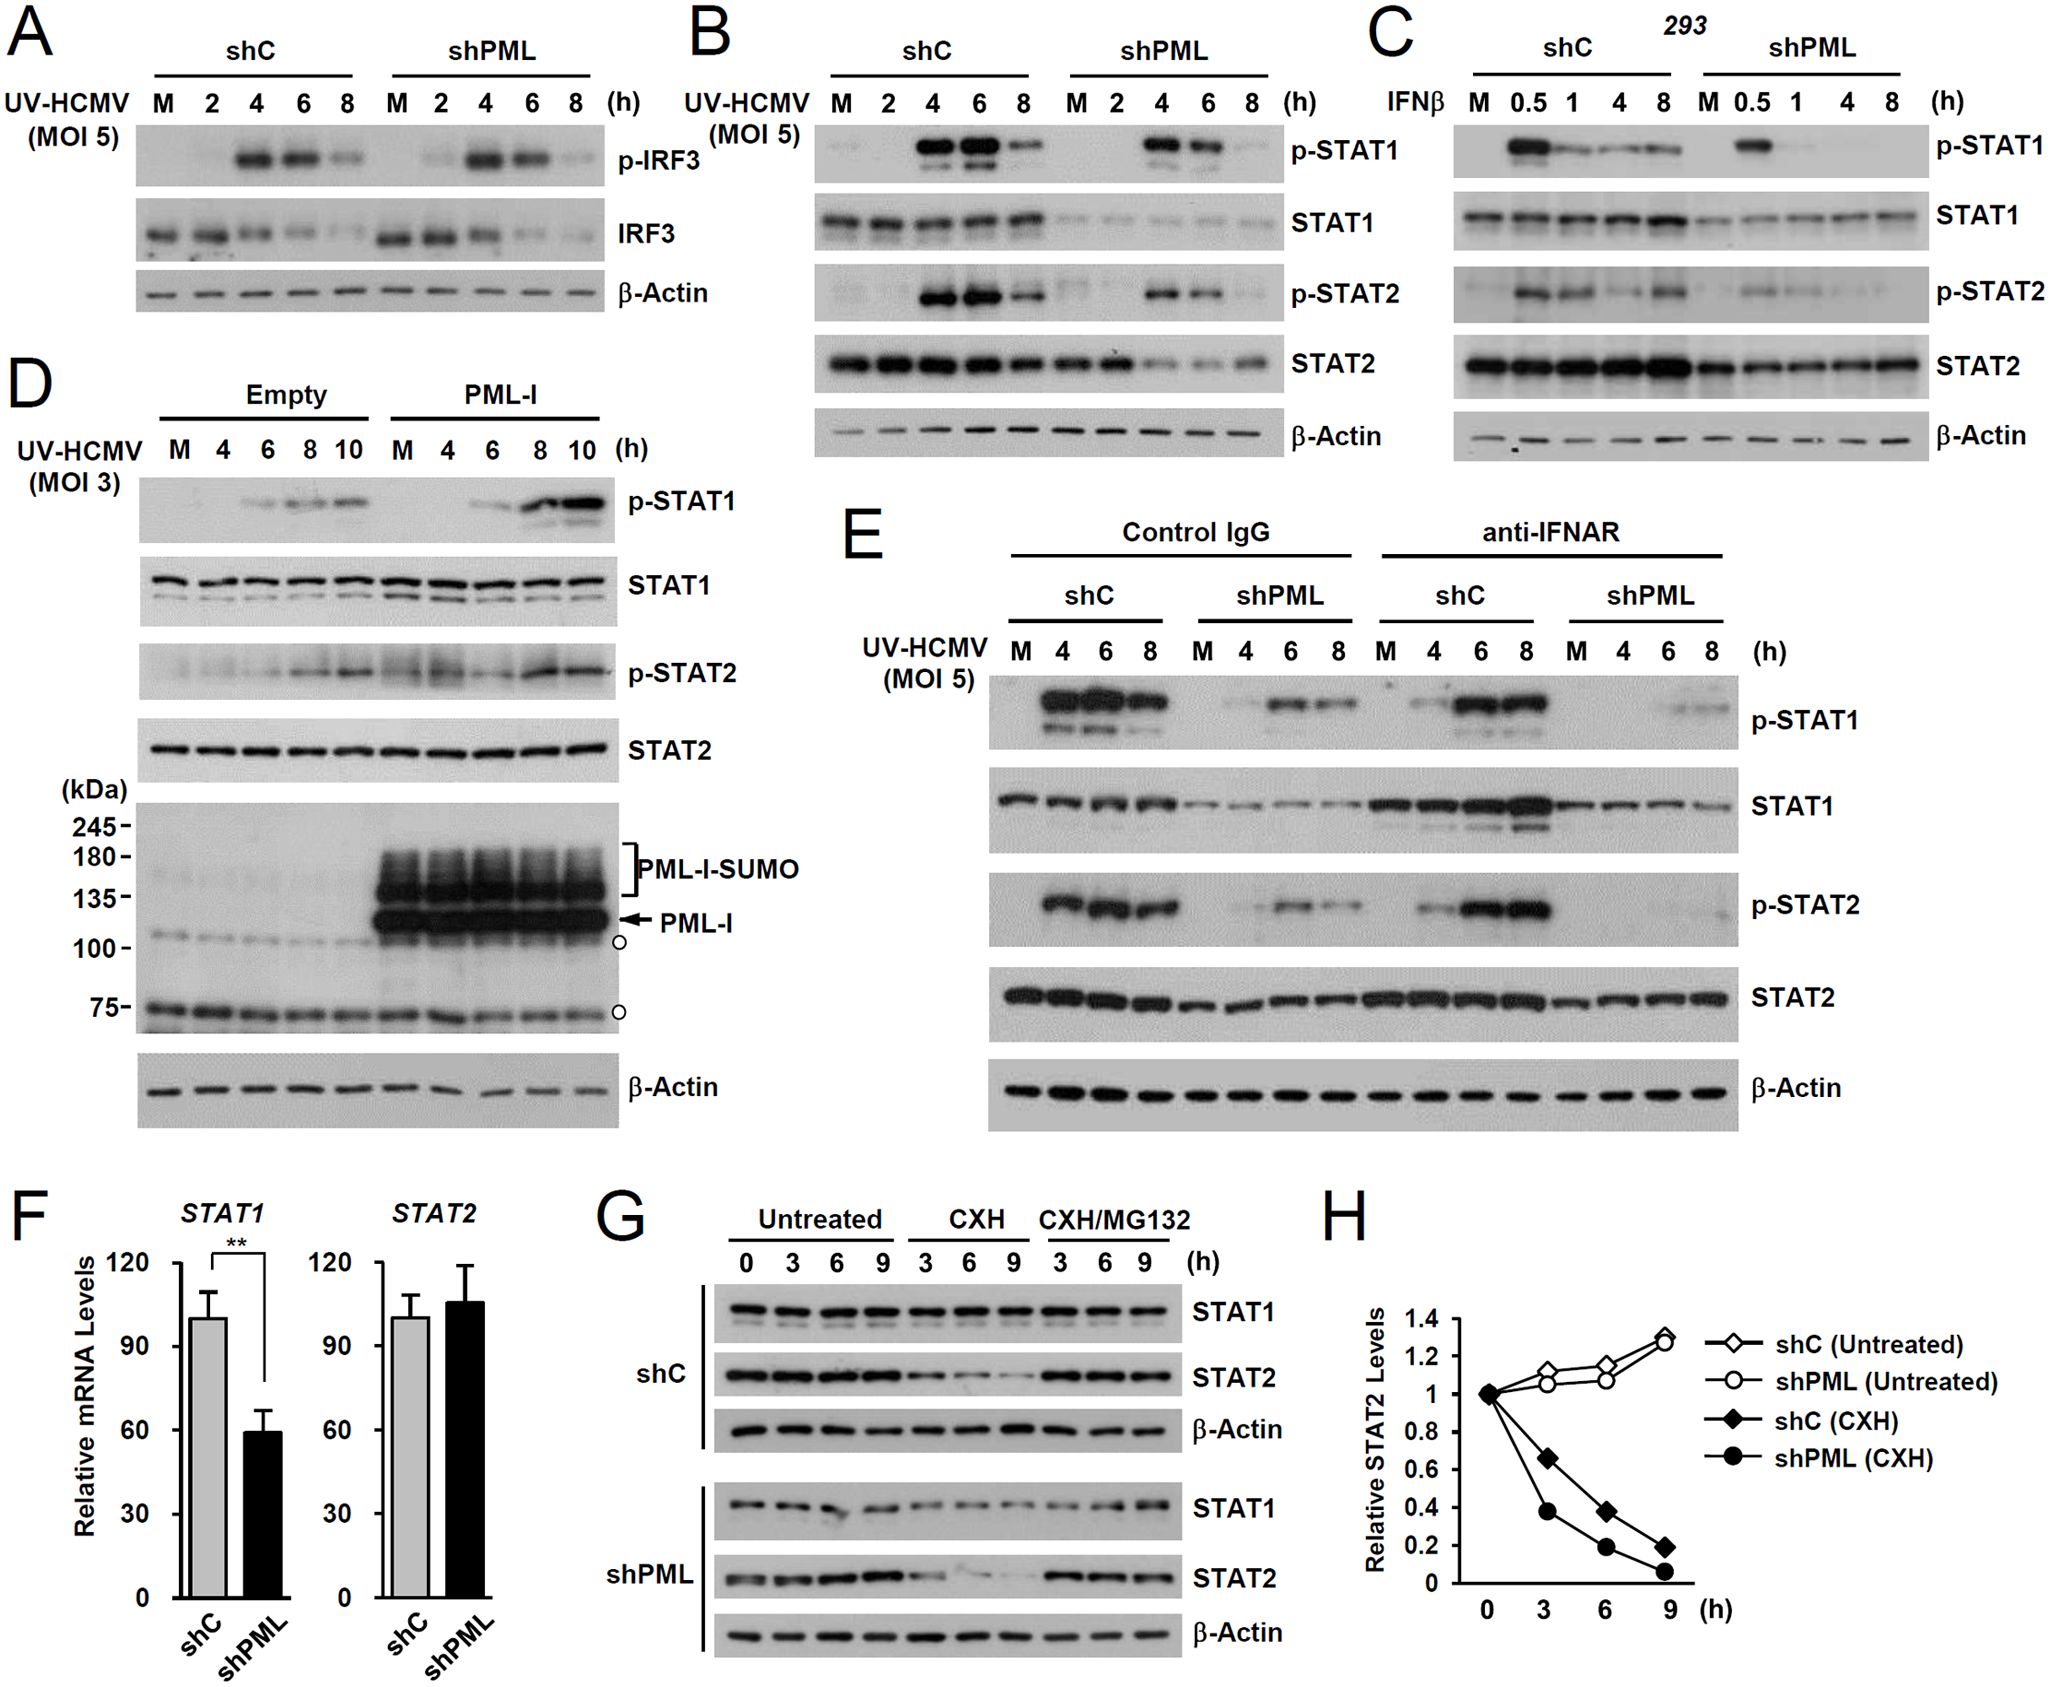 Effects of PML knockdown on the levels of STAT1 and STAT2 and of their activated forms.